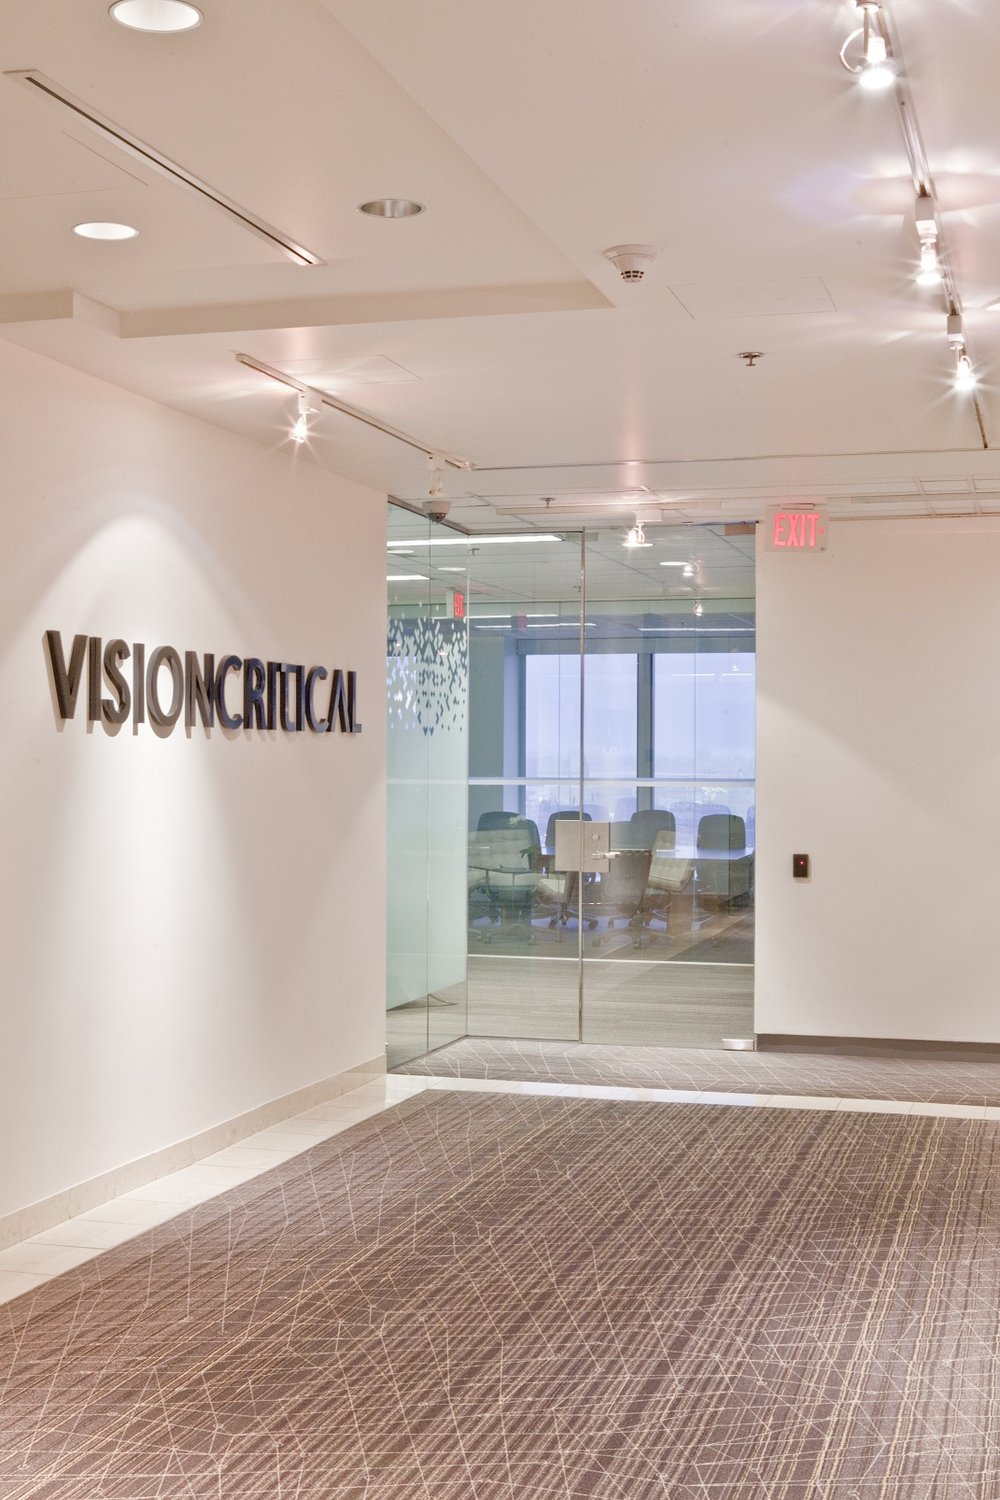 Vision Critical Size:40,000 Sq. Ft. Completed:2010 Services Rendered:Interior Design, Construction Management